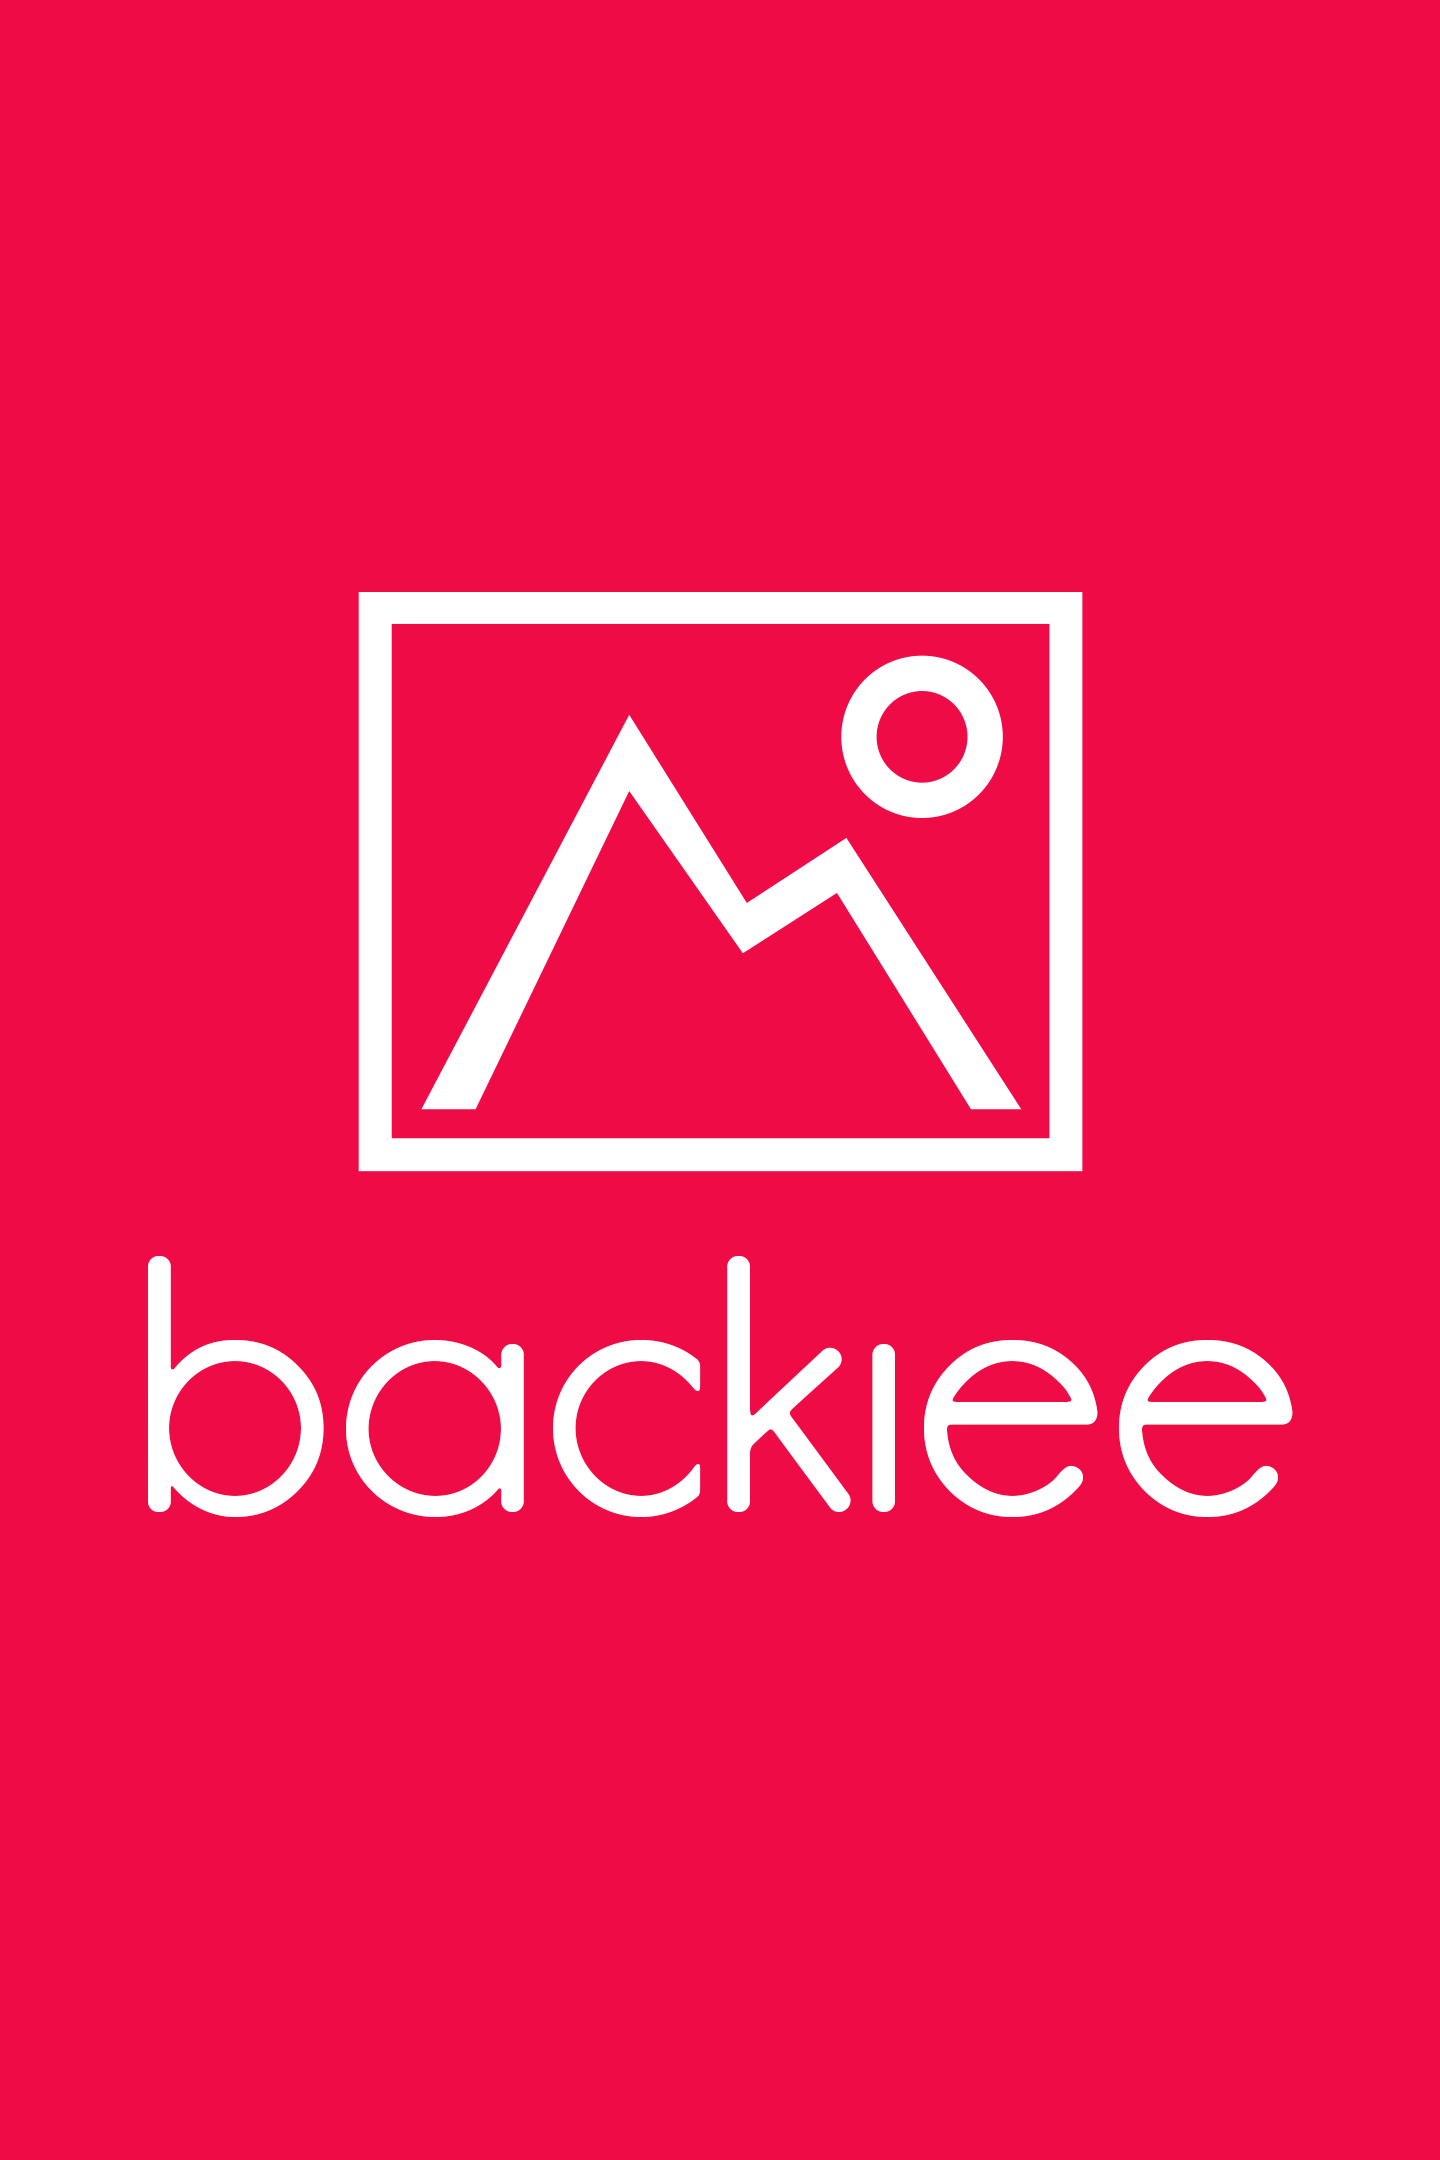 Get backiee - Wallpaper Studio 10 - Microsoft Store